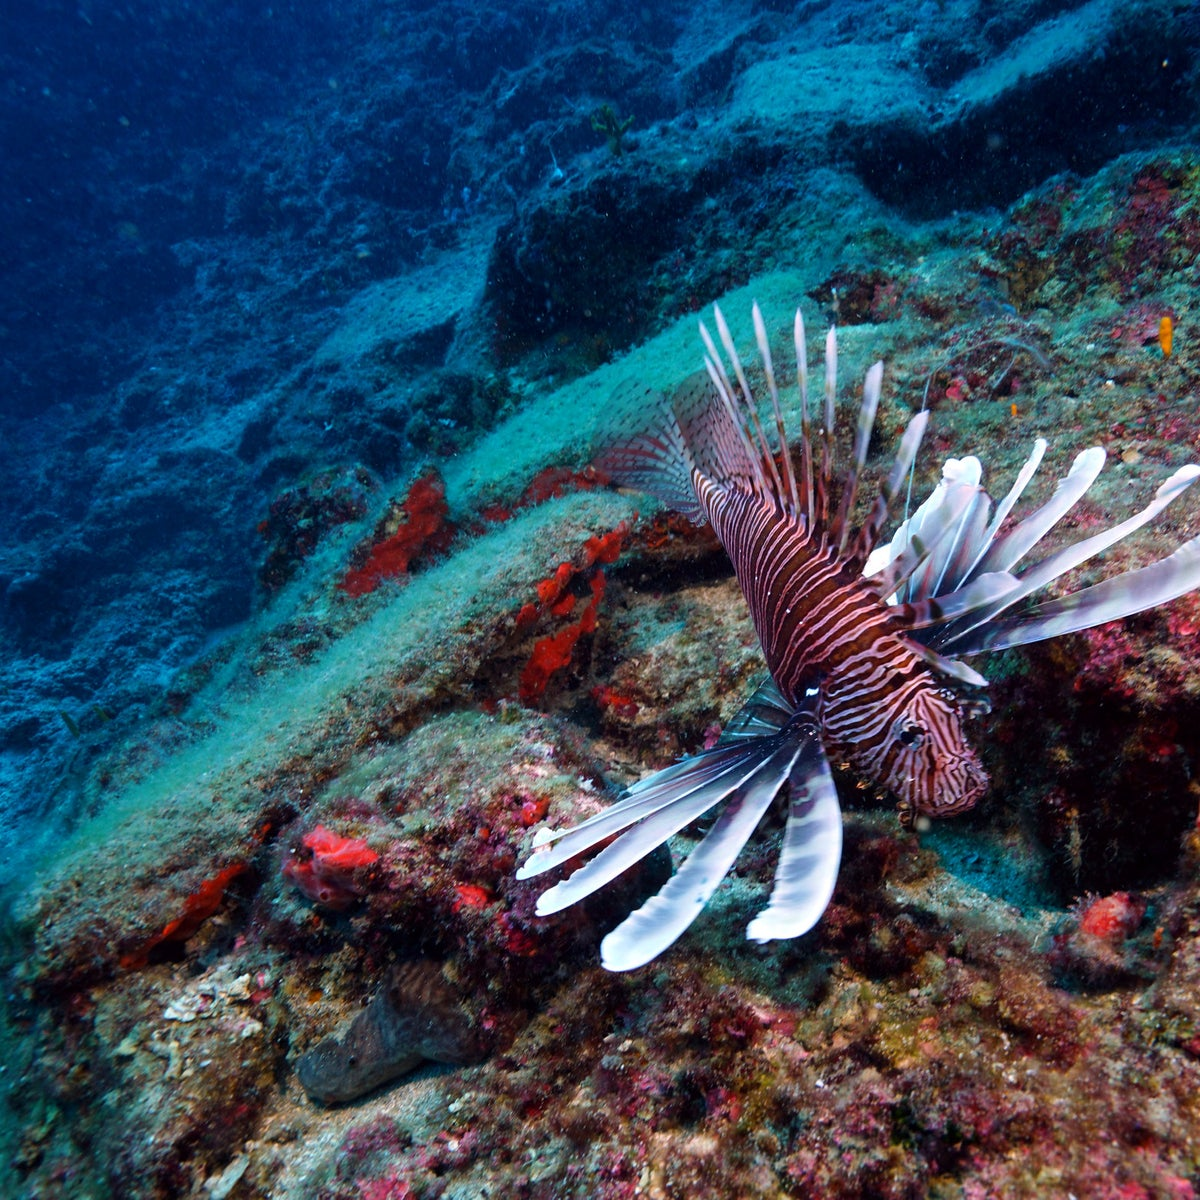 Poisonous lionfish swims over 3,600-year-old copper ingots